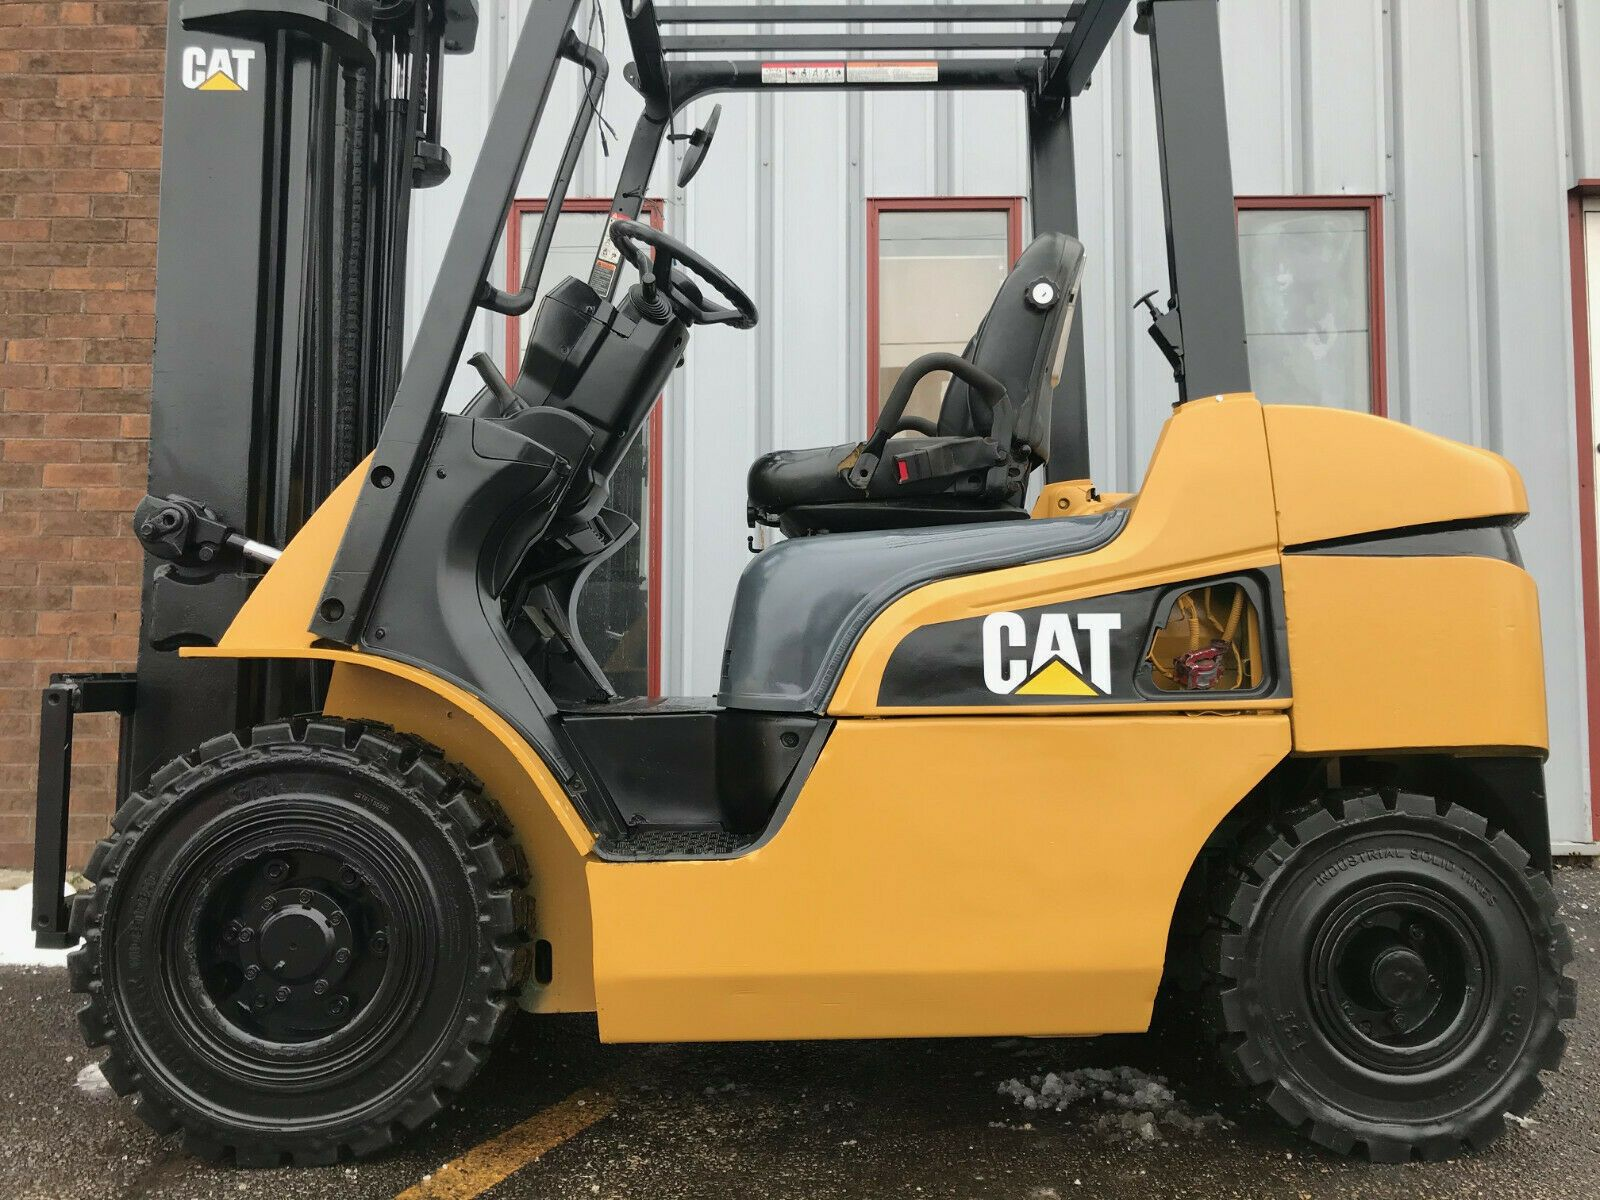 Caterpillar Forklift In 2020 Lifted Trucks Lifted Jeep Forklift